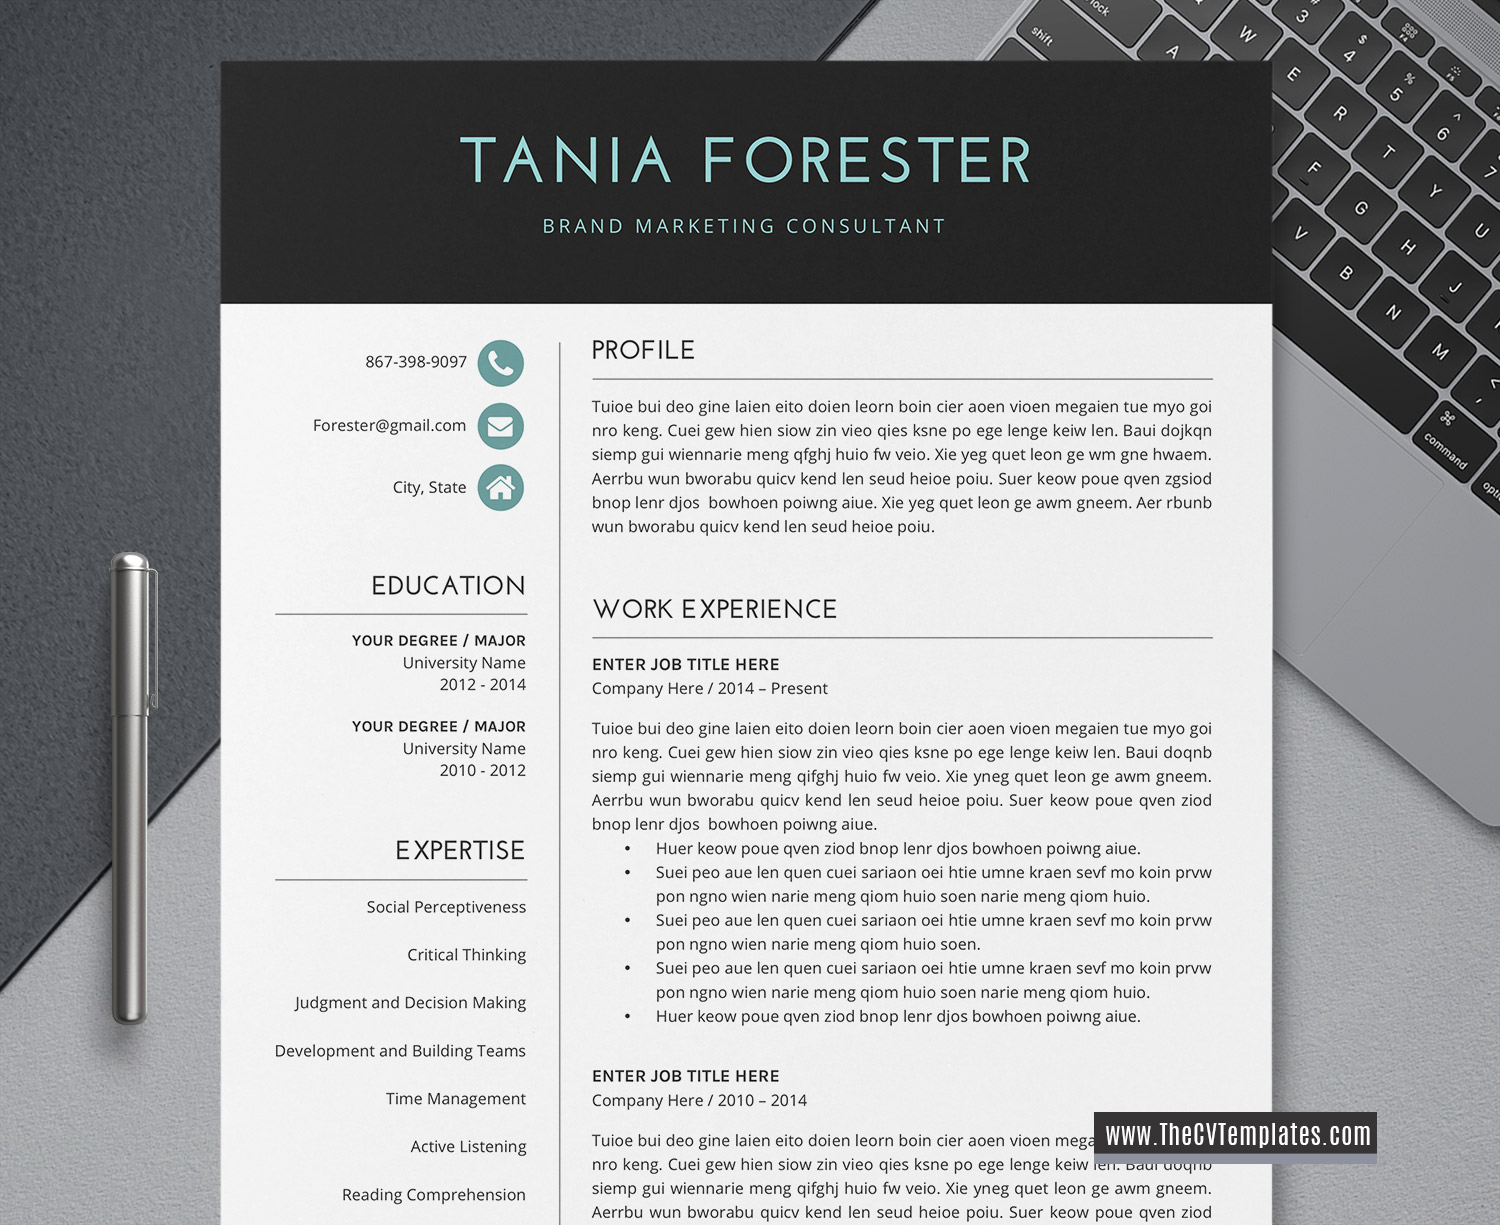 Resume Template Printable from www.thecvtemplates.com